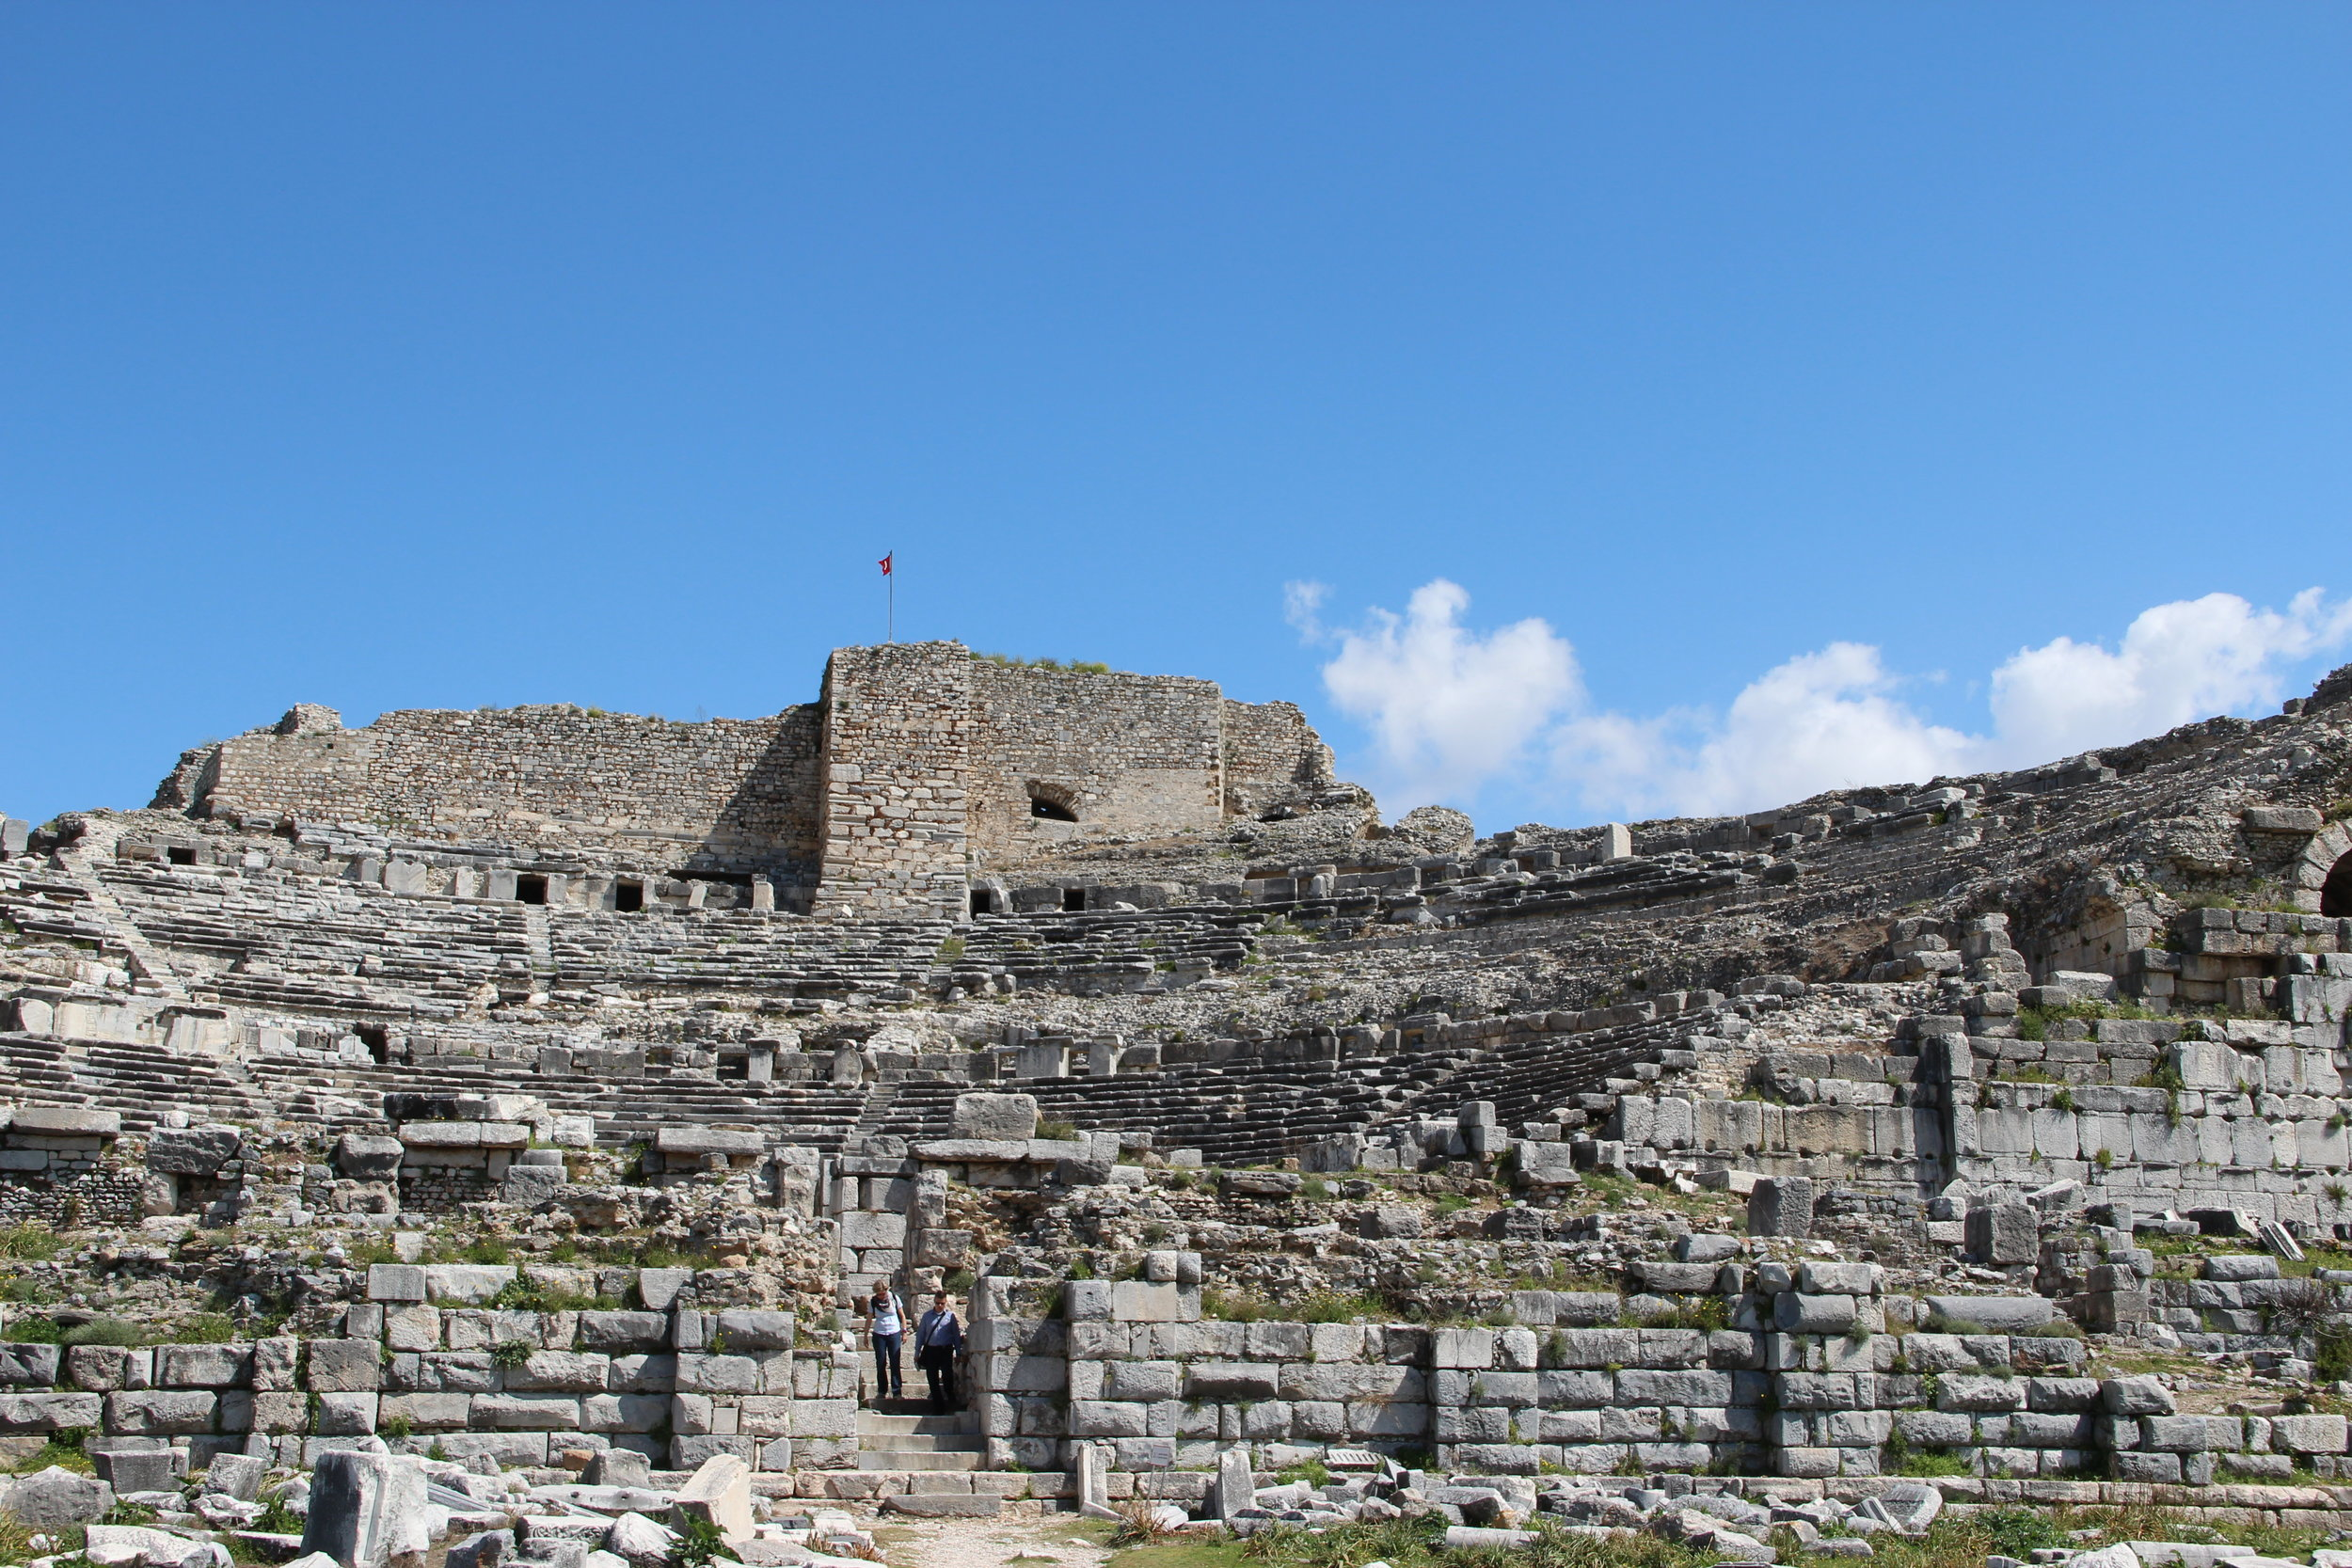 The ruins of Miletus. A glorious 4,000 year old city, conquered by Alexander in 334 BC, turned into a bishopric with a castle by the Byzantine's in the 6th century, used by the Ottomans in the 14th century but finally abandoned when the harbour silted up.